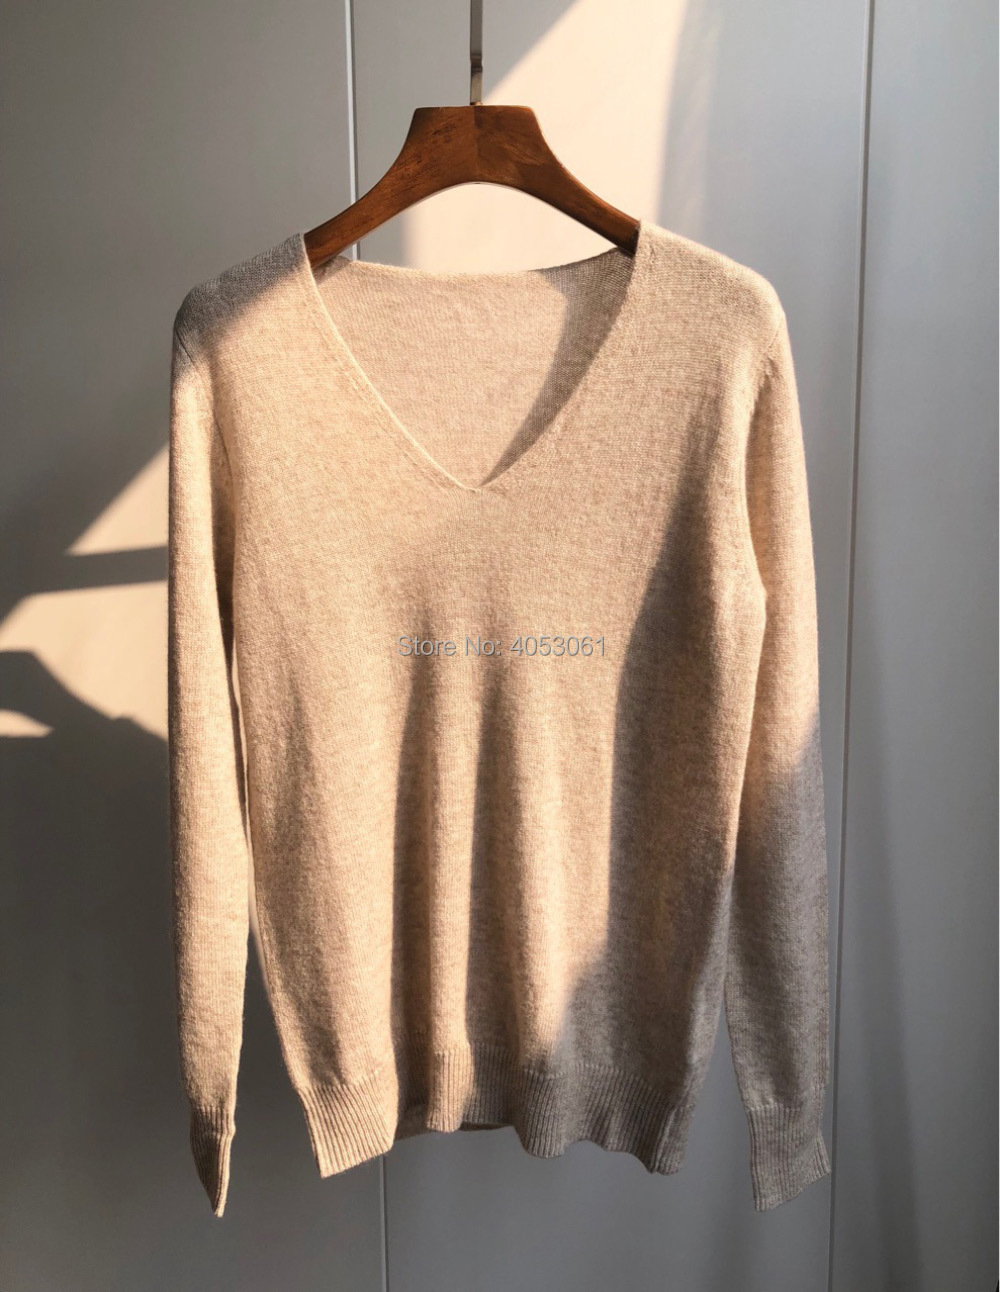 Cashmere 100 V neck Soft Skin friendly Sweater 2019ss Multi color Optional Top Knit Sweater